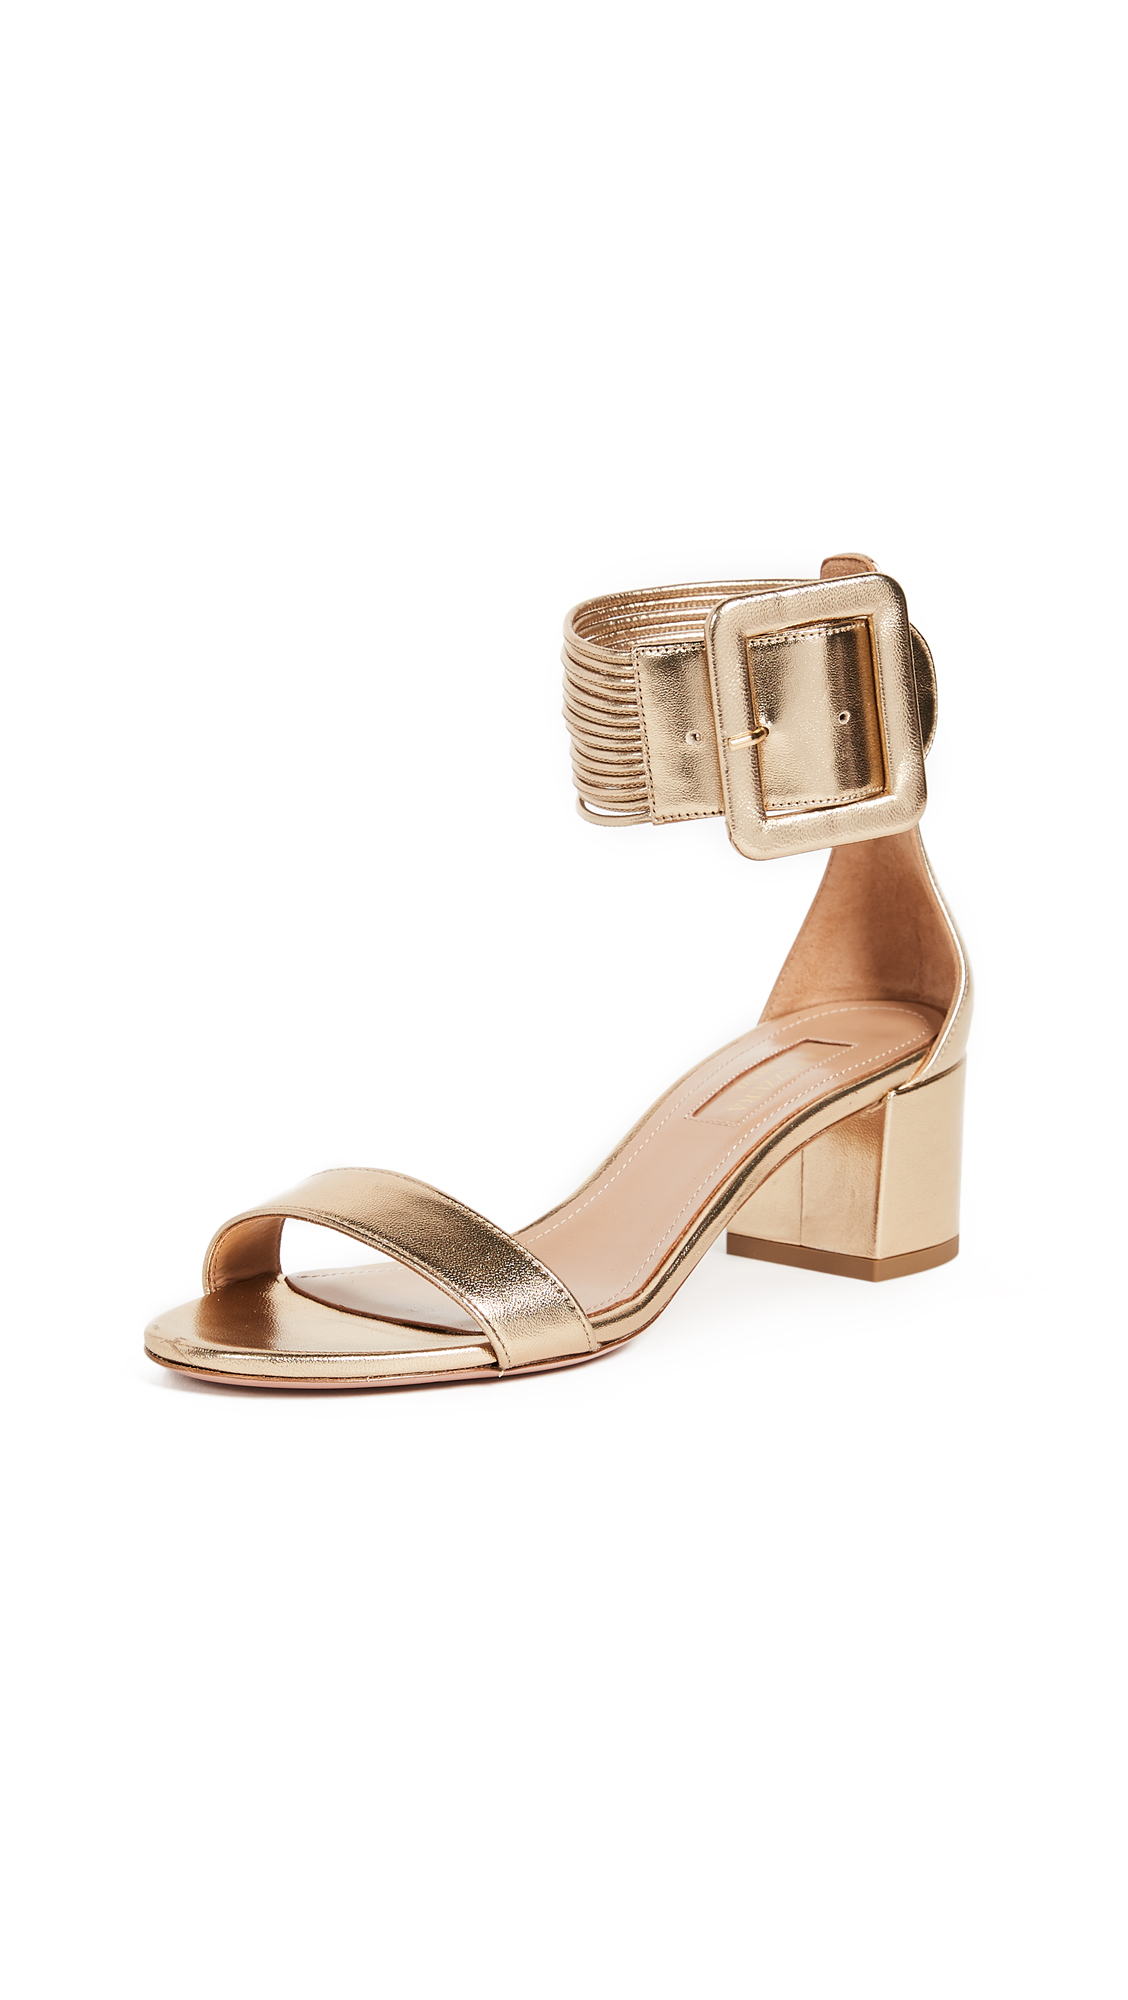 Aquazzura Casablanca 50 Sandals - Light Gold